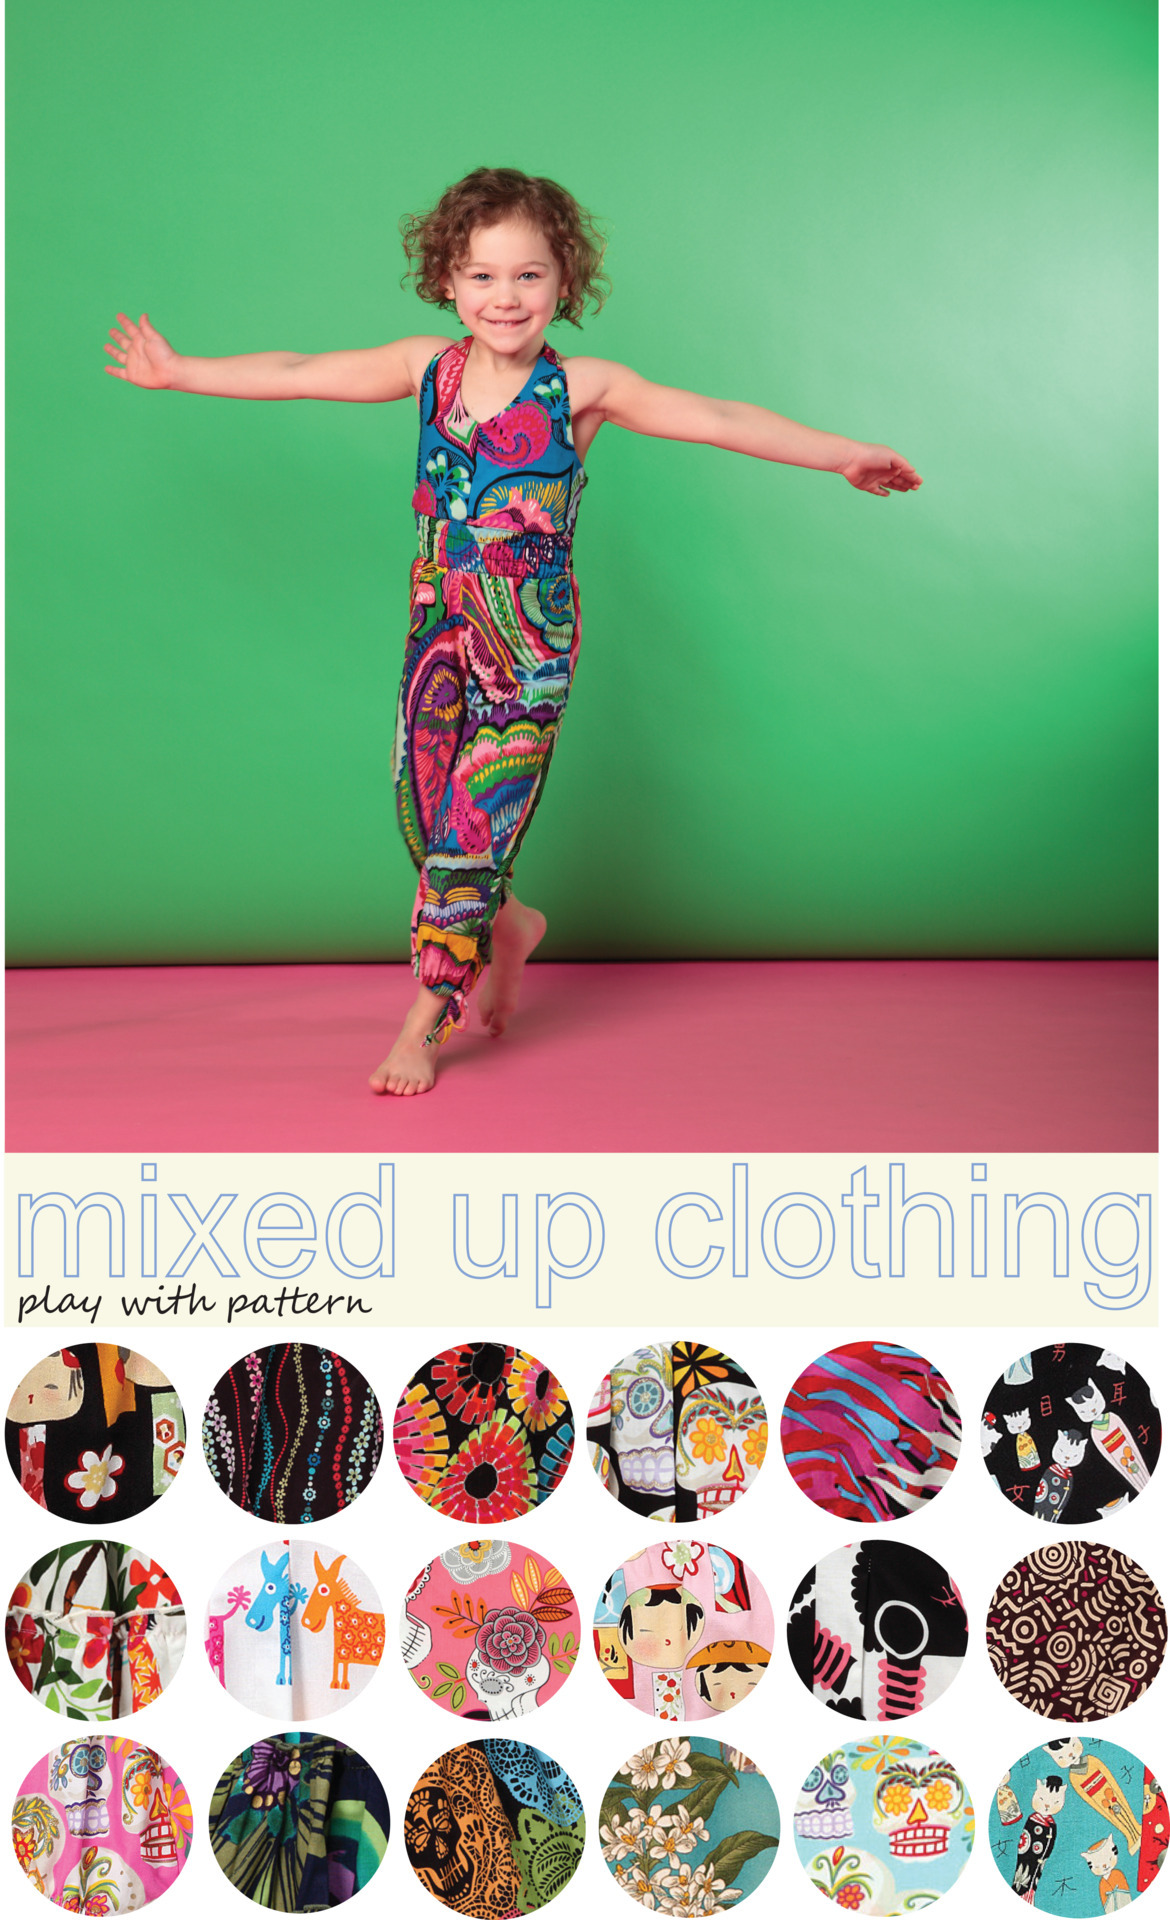 Mixed Up Clothing | Tomorrow on zulily Patterns, patterns, patterns! We are obsessed with kids who play with pattern.  Mixed Up Clothing is inspired by the textiles, cultures, and people of the world. A line dedicated to the power of diversity through trendy and colorful designs, your little fashionista can travel the world one romper, bubble bodysuit, or dress at a time.  Need a reminder for tomorrow's event? Check out the Mixed Up Clothing page now!